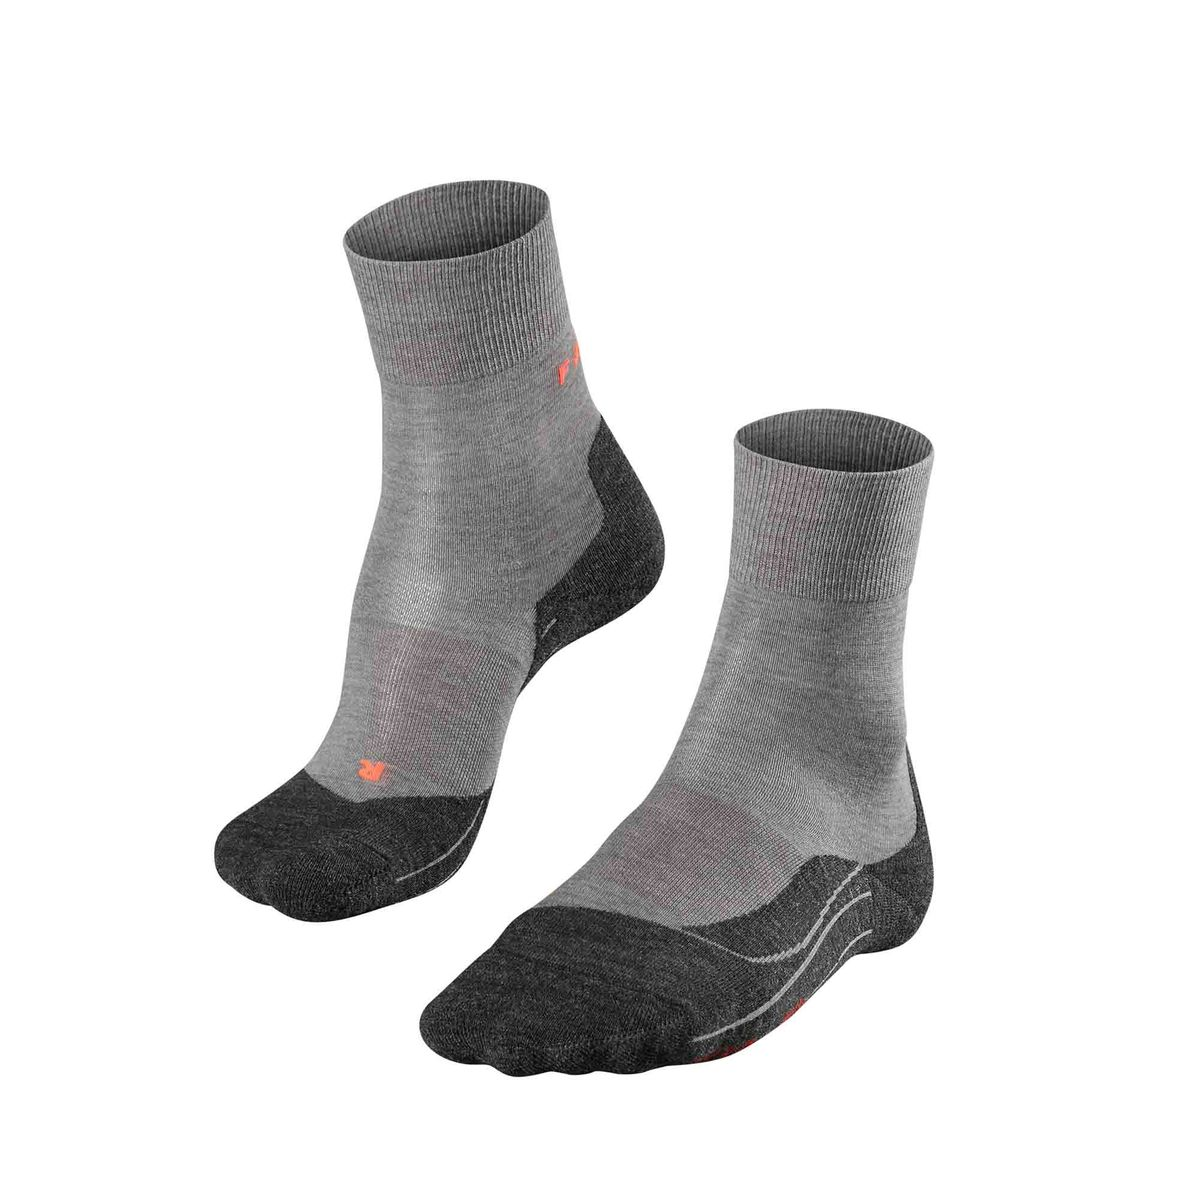 RU4 wool socks